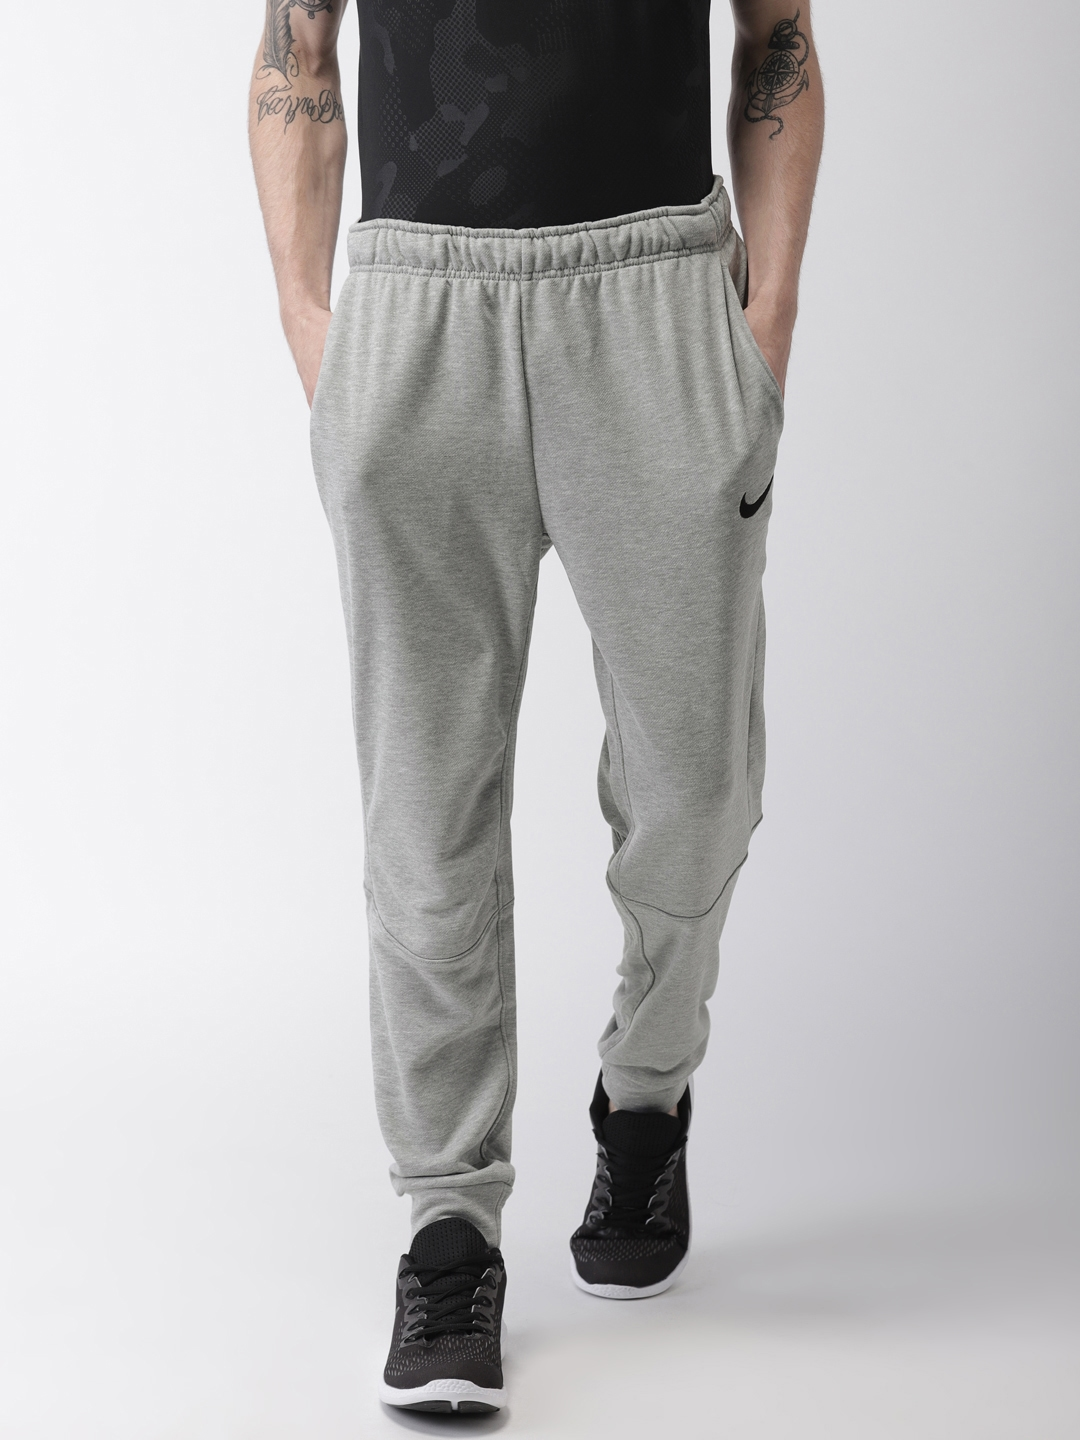 496f86ab1bd4e Buy Nike Men Grey DRY TAPER FLEECE Solid Joggers - Track Pants for ...